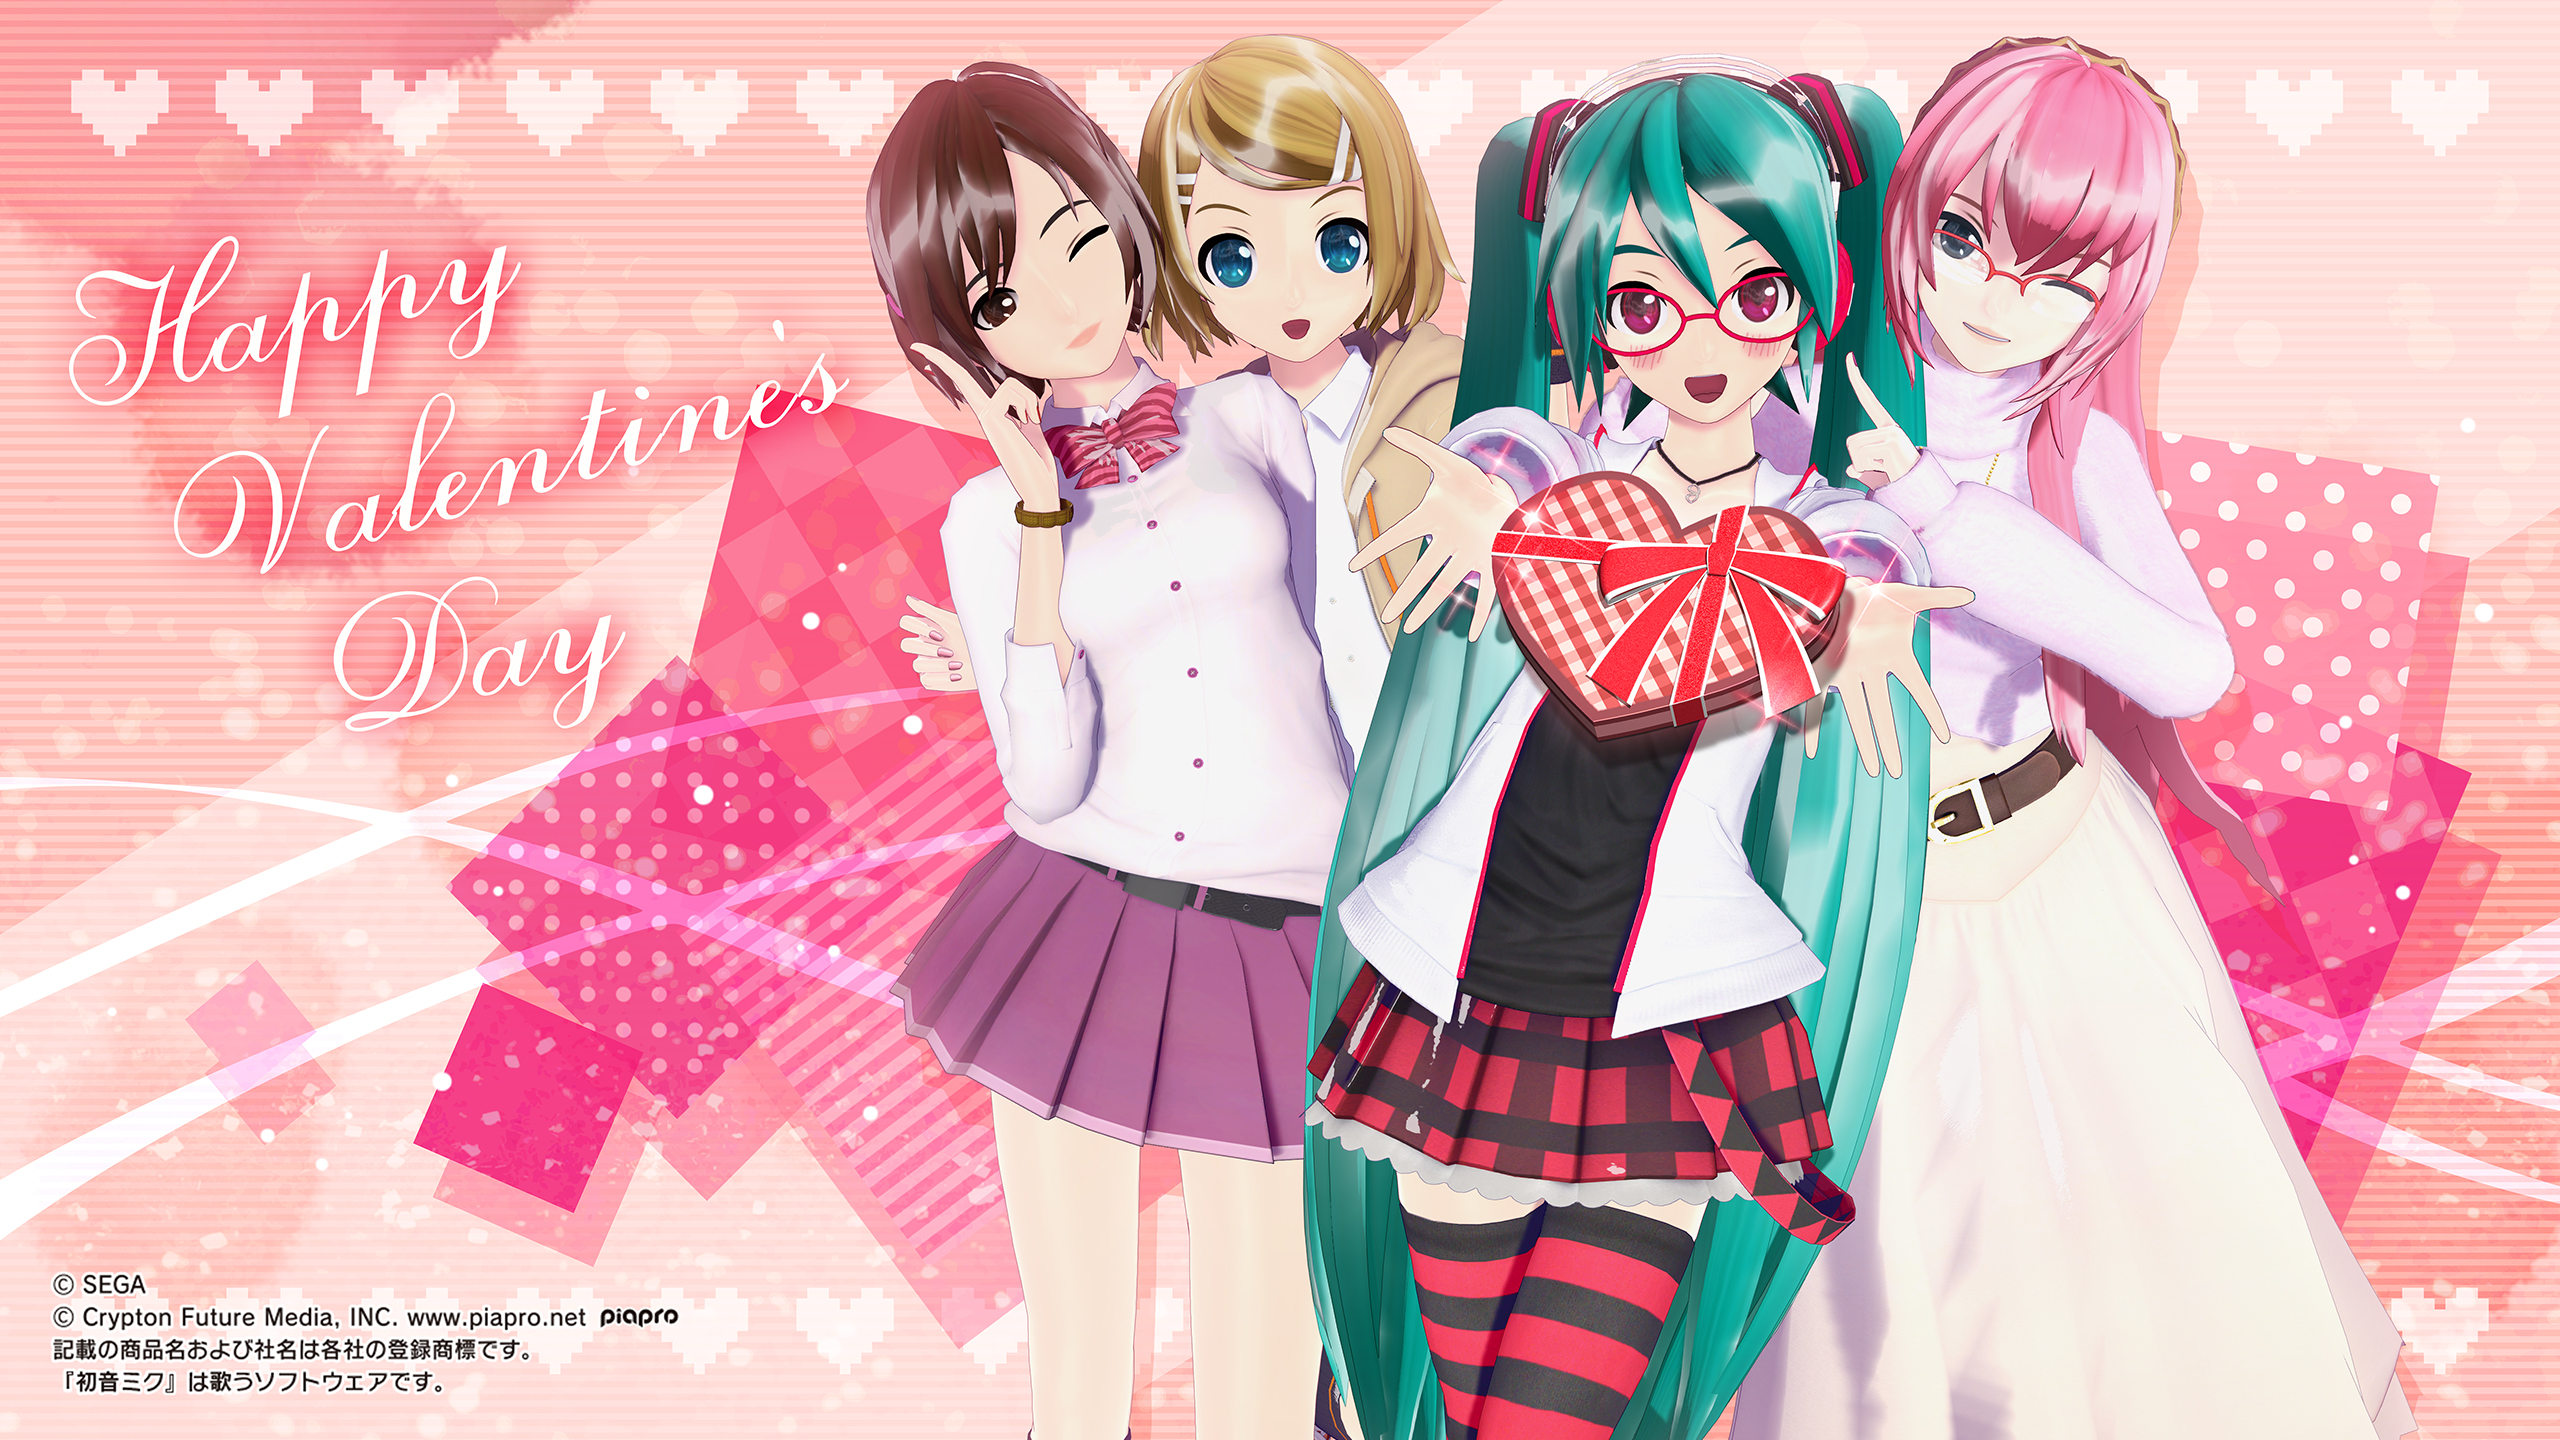 Project DIVA Team Celebrates Valentines Day With X Video And Wallpaper